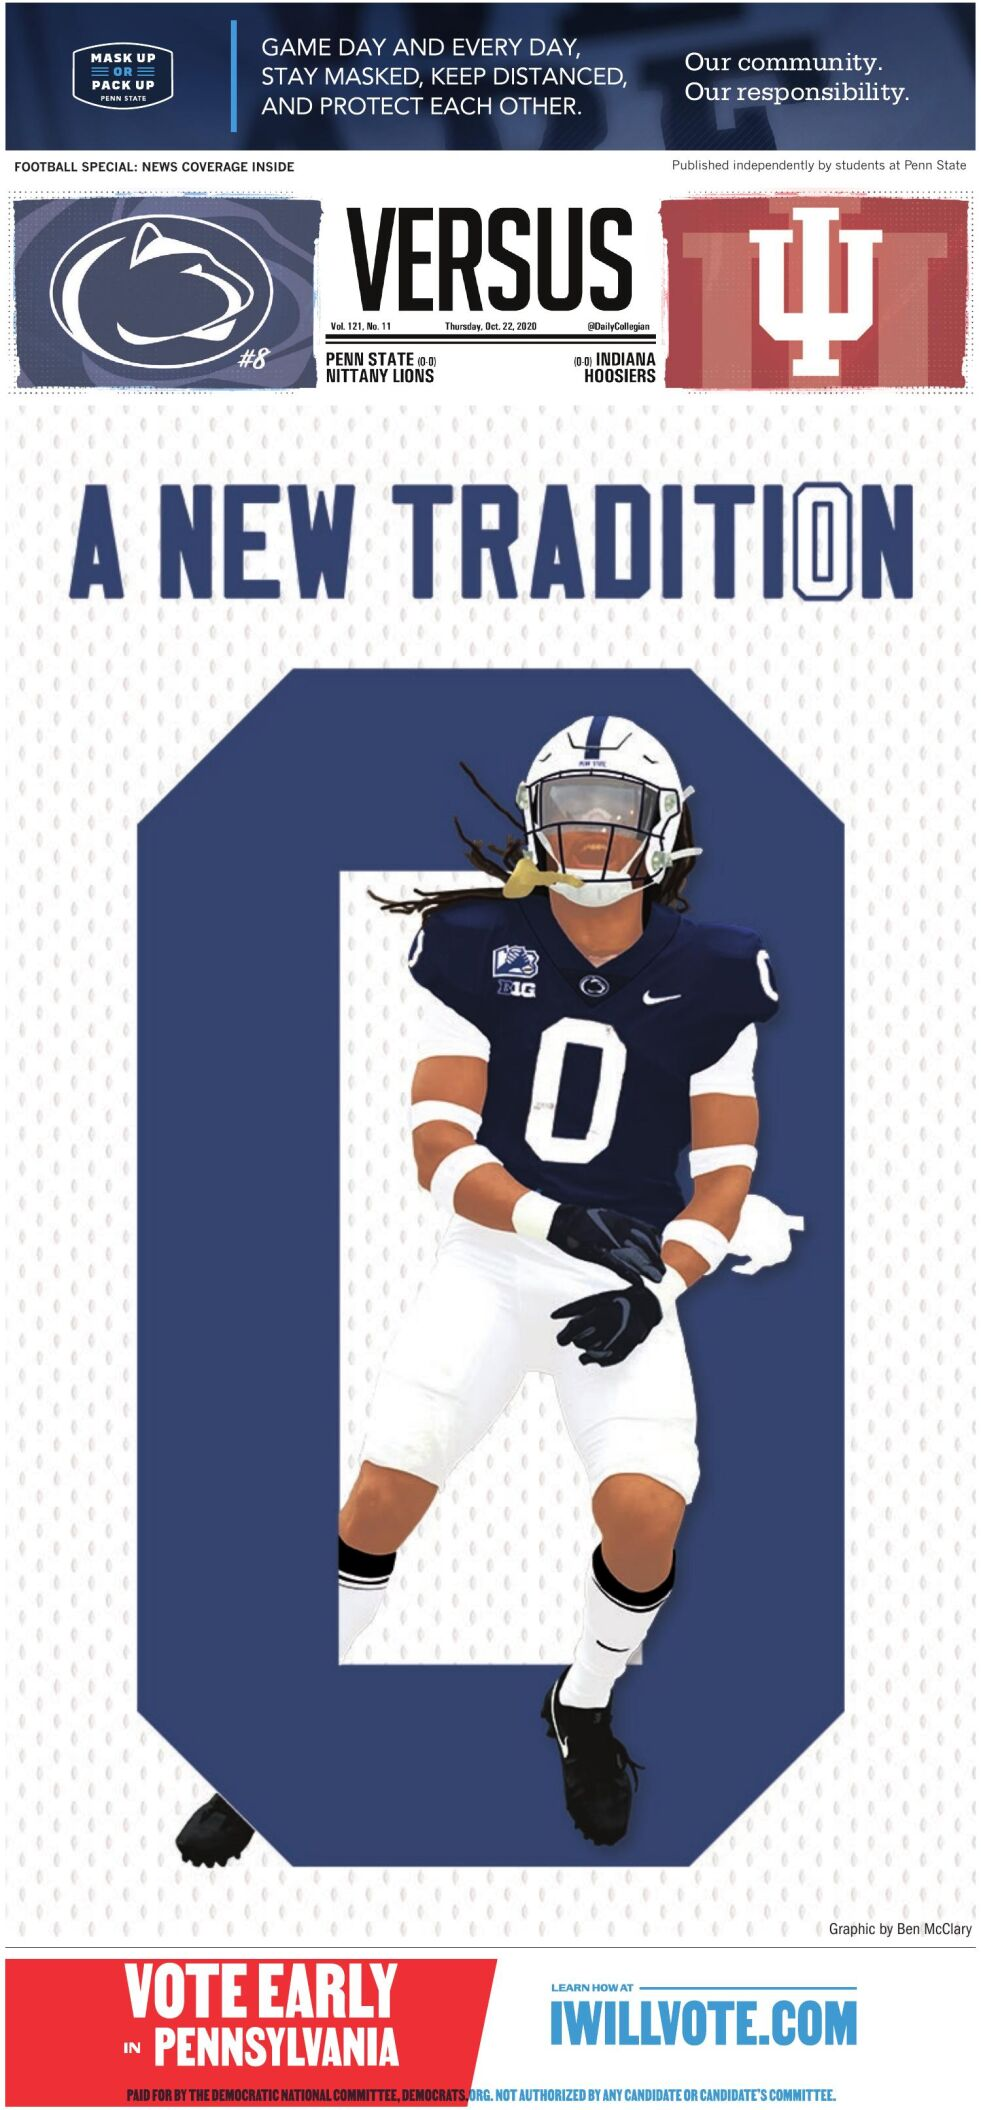 The Daily Collegian for Oct. 22, 2020